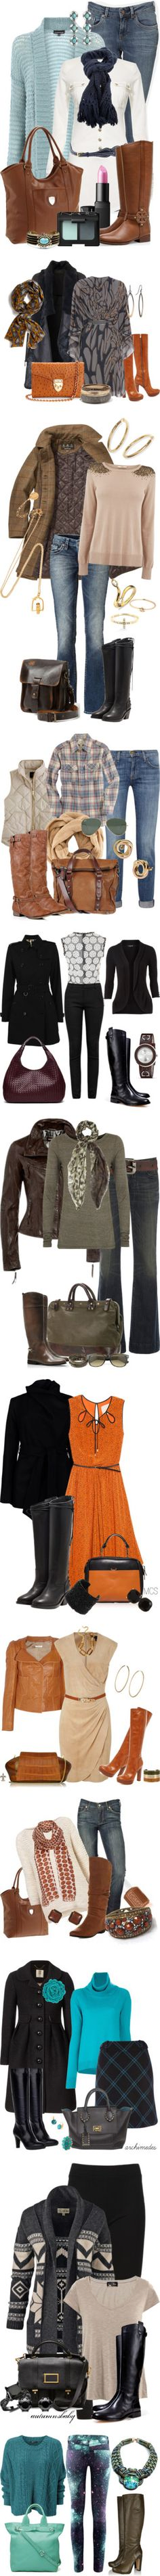 """""""Knee High Boots"""" by polyvore-shopper ❤ liked on Polyvore"""